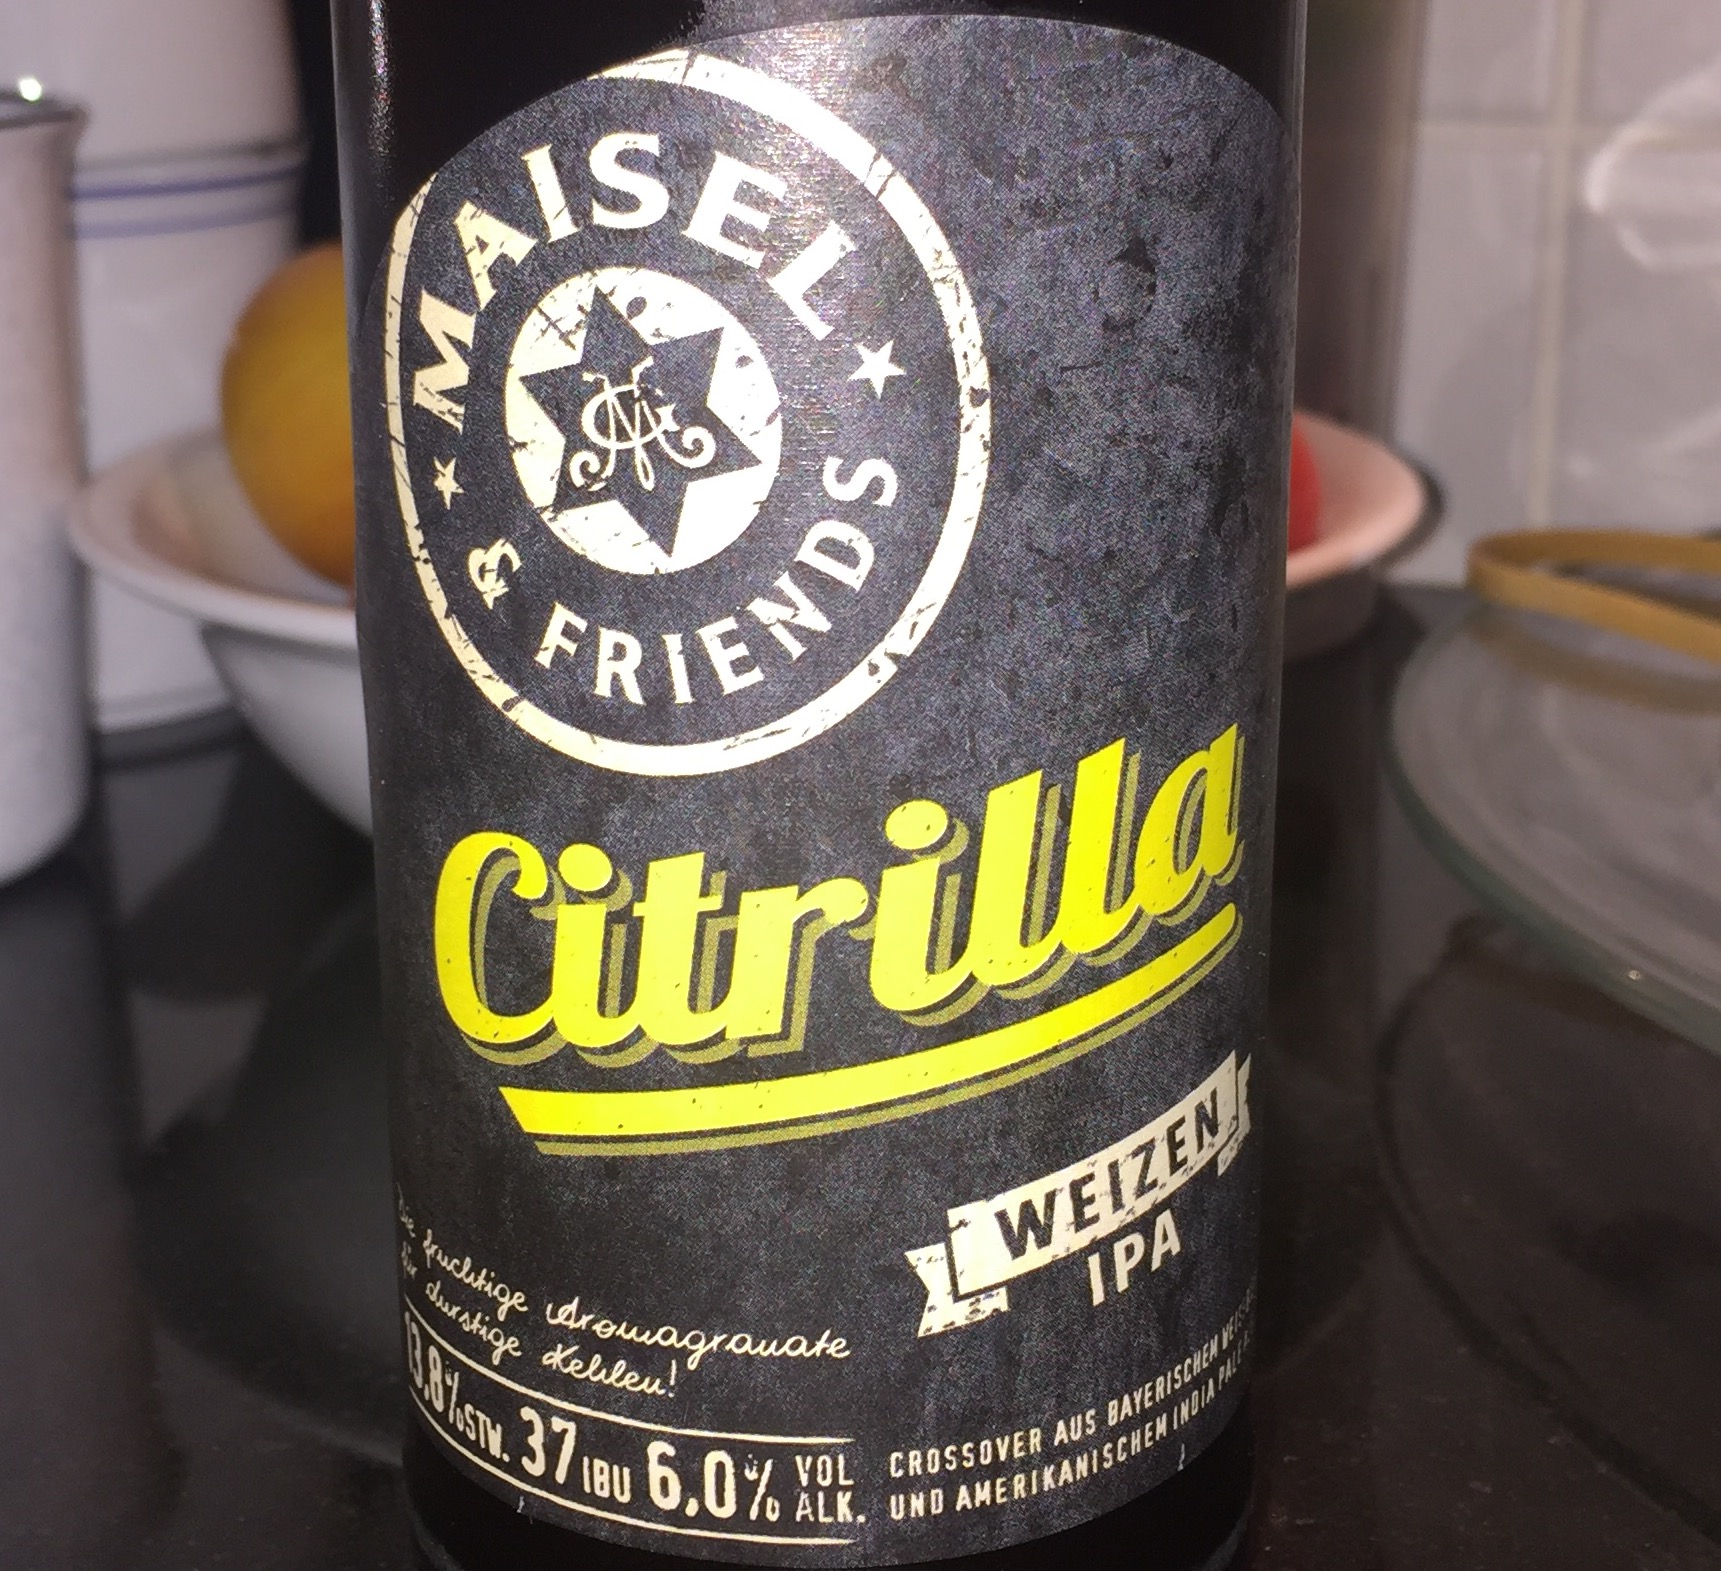 Maisel & Friends - Citrilla